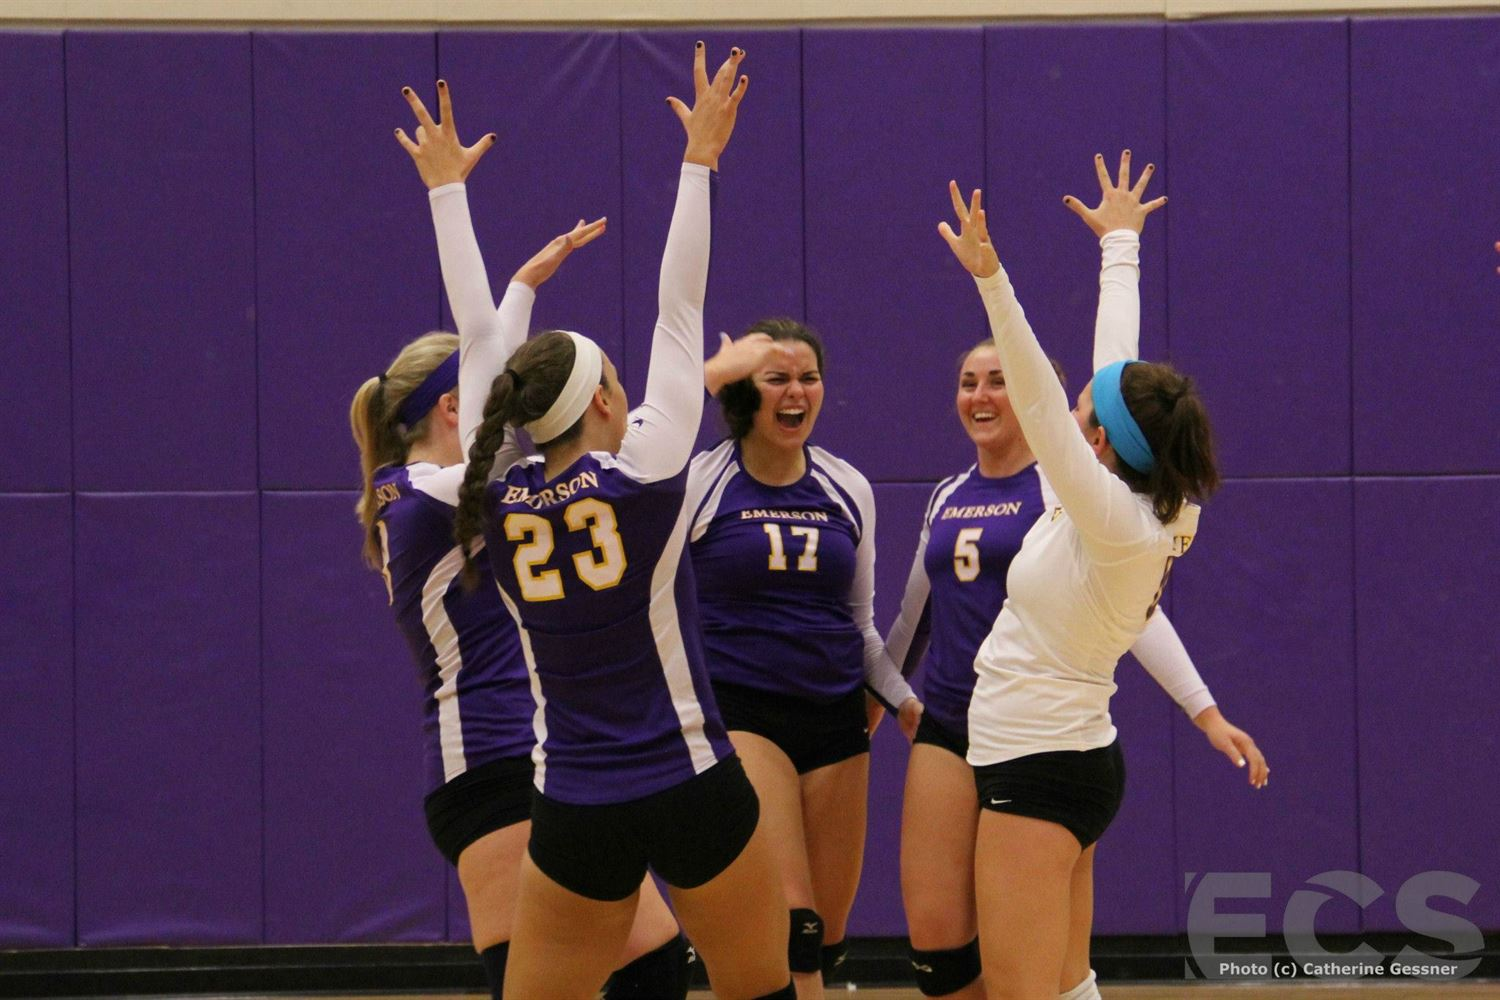 Emerson College - Emerson Women's Volleyball